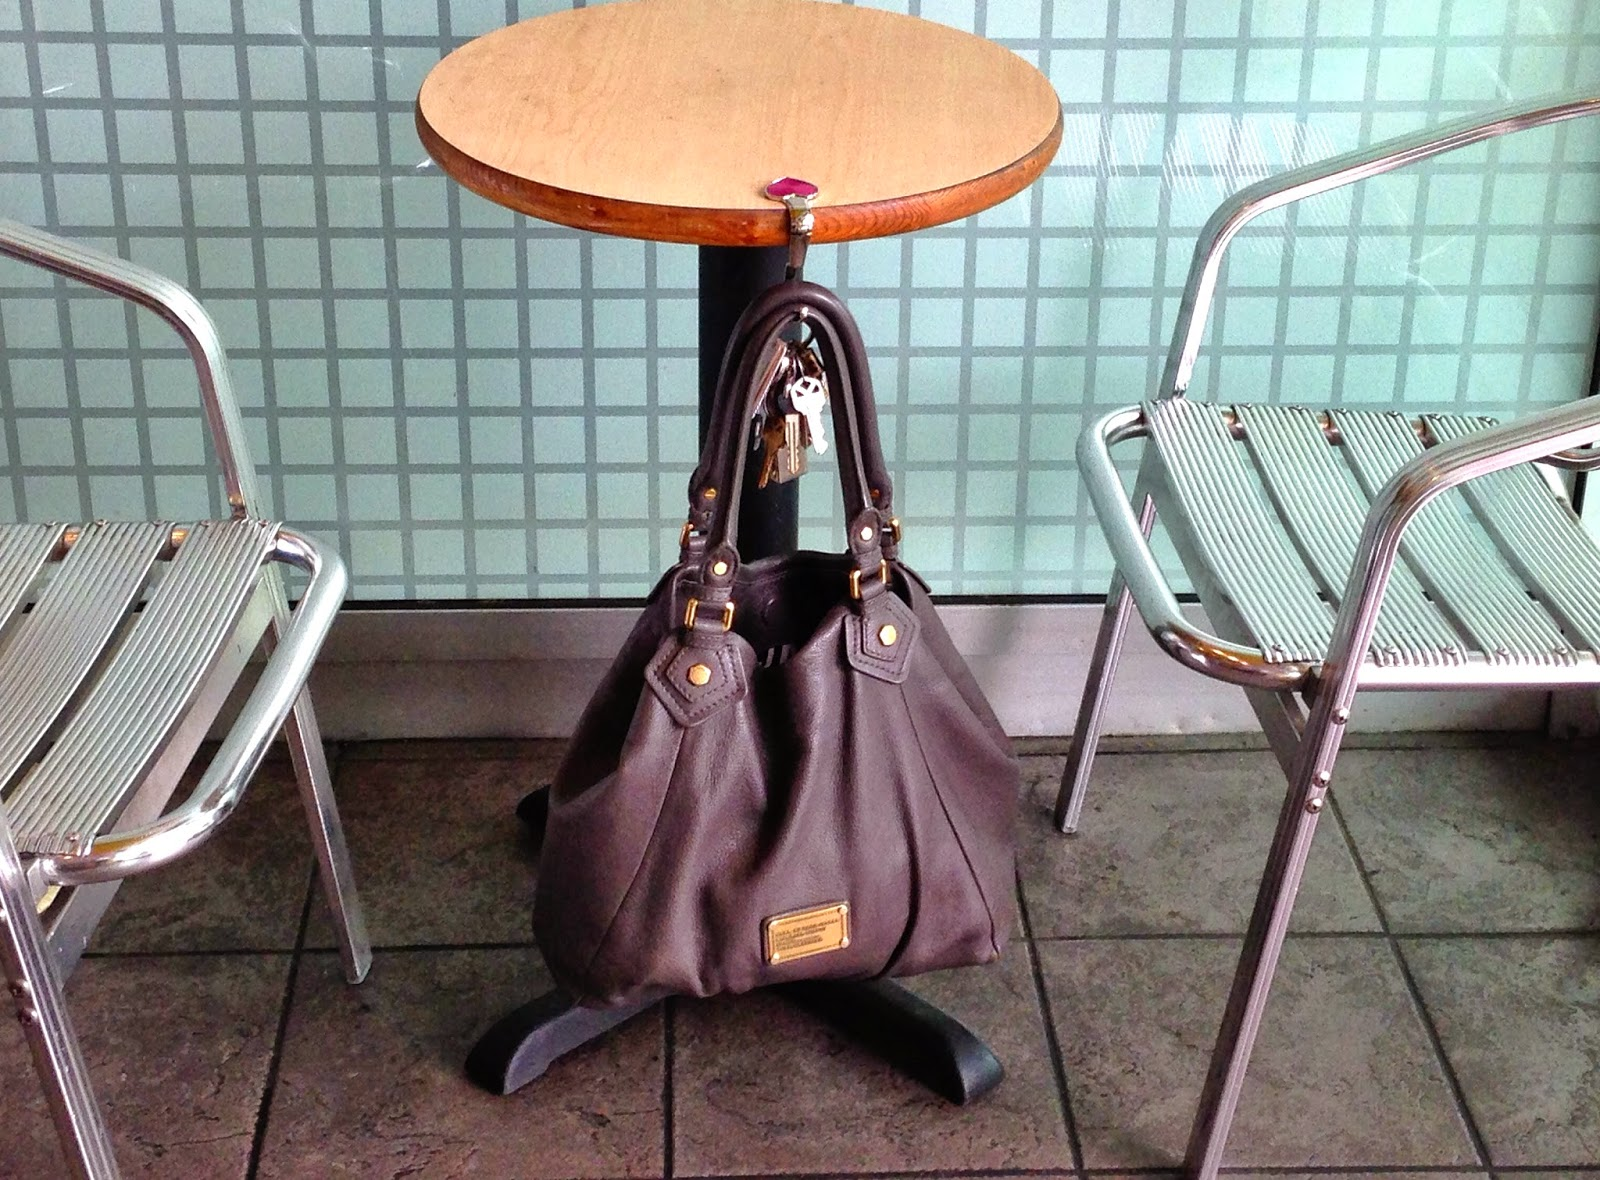 My Bag Pal hanging from a table - Hello Handbag